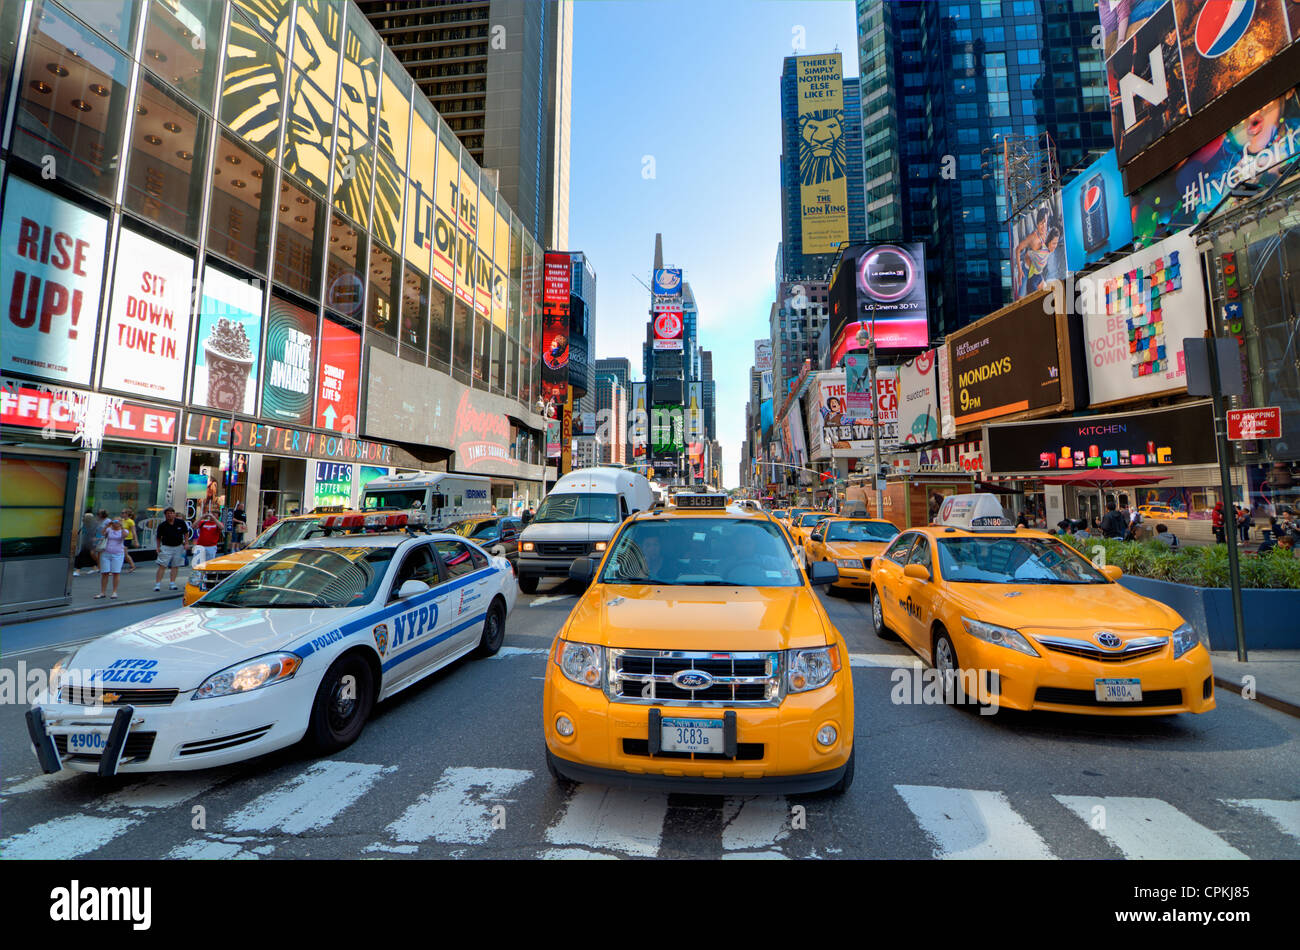 Broadway at Times Square in New York City. - Stock Image